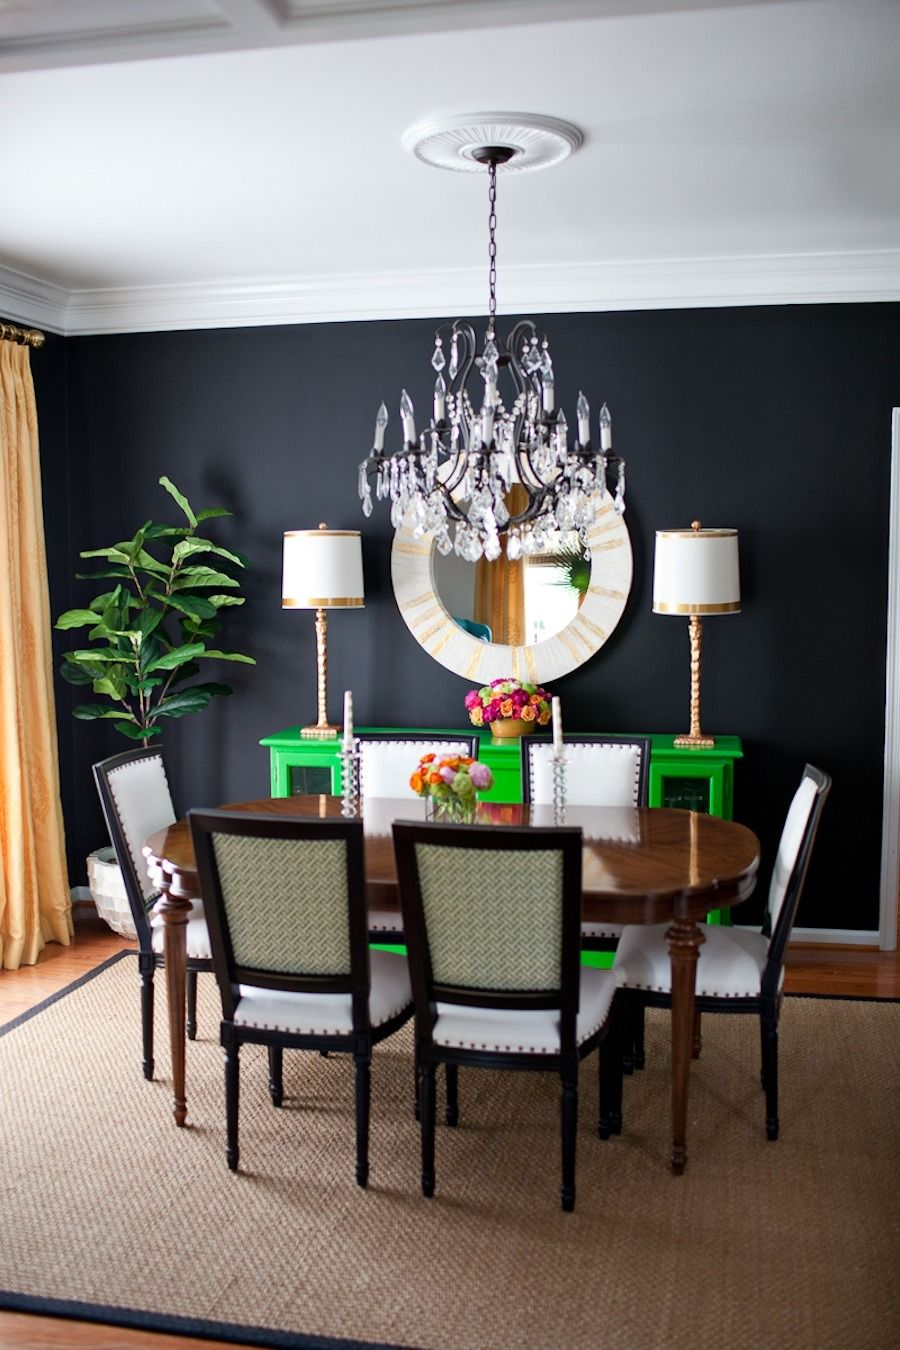 Kelly Green Console In A Black Dining Room